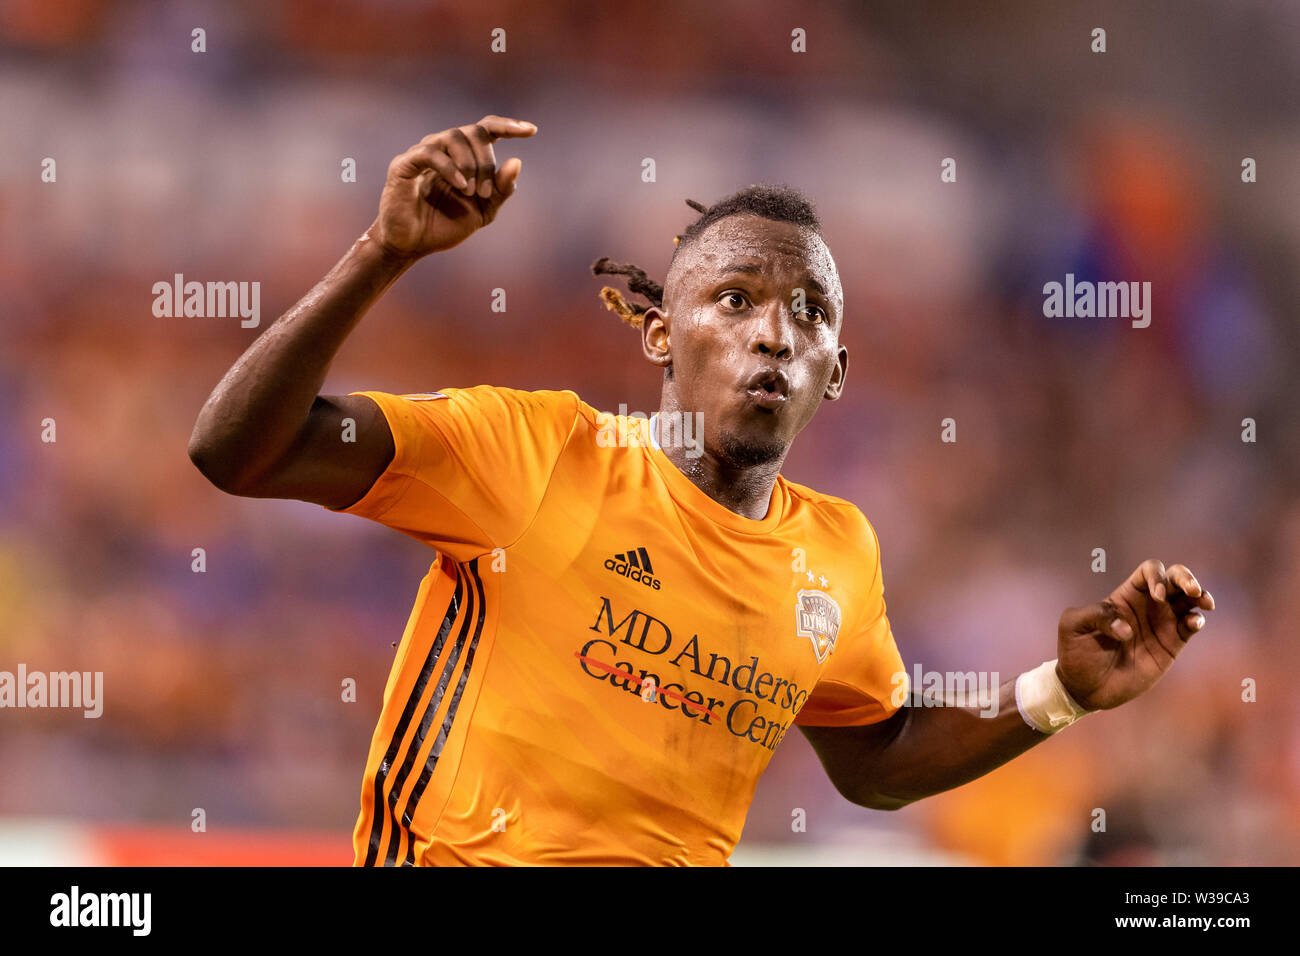 Houston, Texas, USA. 12th July, 2019. Houston Dynamo forward Alberth Elis (17) during a match between Los Angeles FC and Houston Dynamo at BBVA Stadium in Houston, Texas. The final LAFC wins 3-1. Maria Lysaker/CSM/Alamy Live News - Stock Image